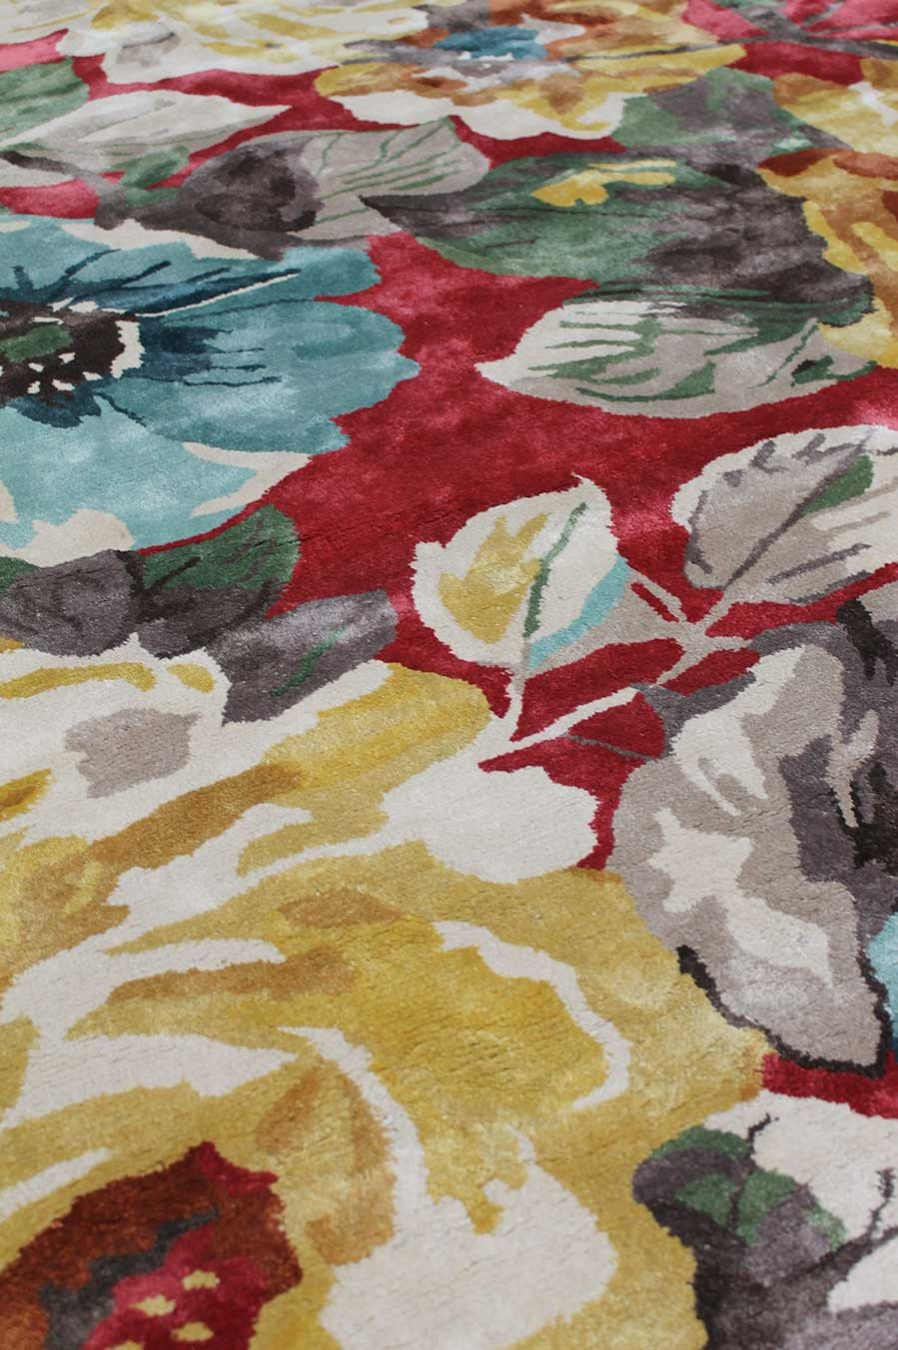 Close up view of floral Rendezvous rug in red and yellow colour